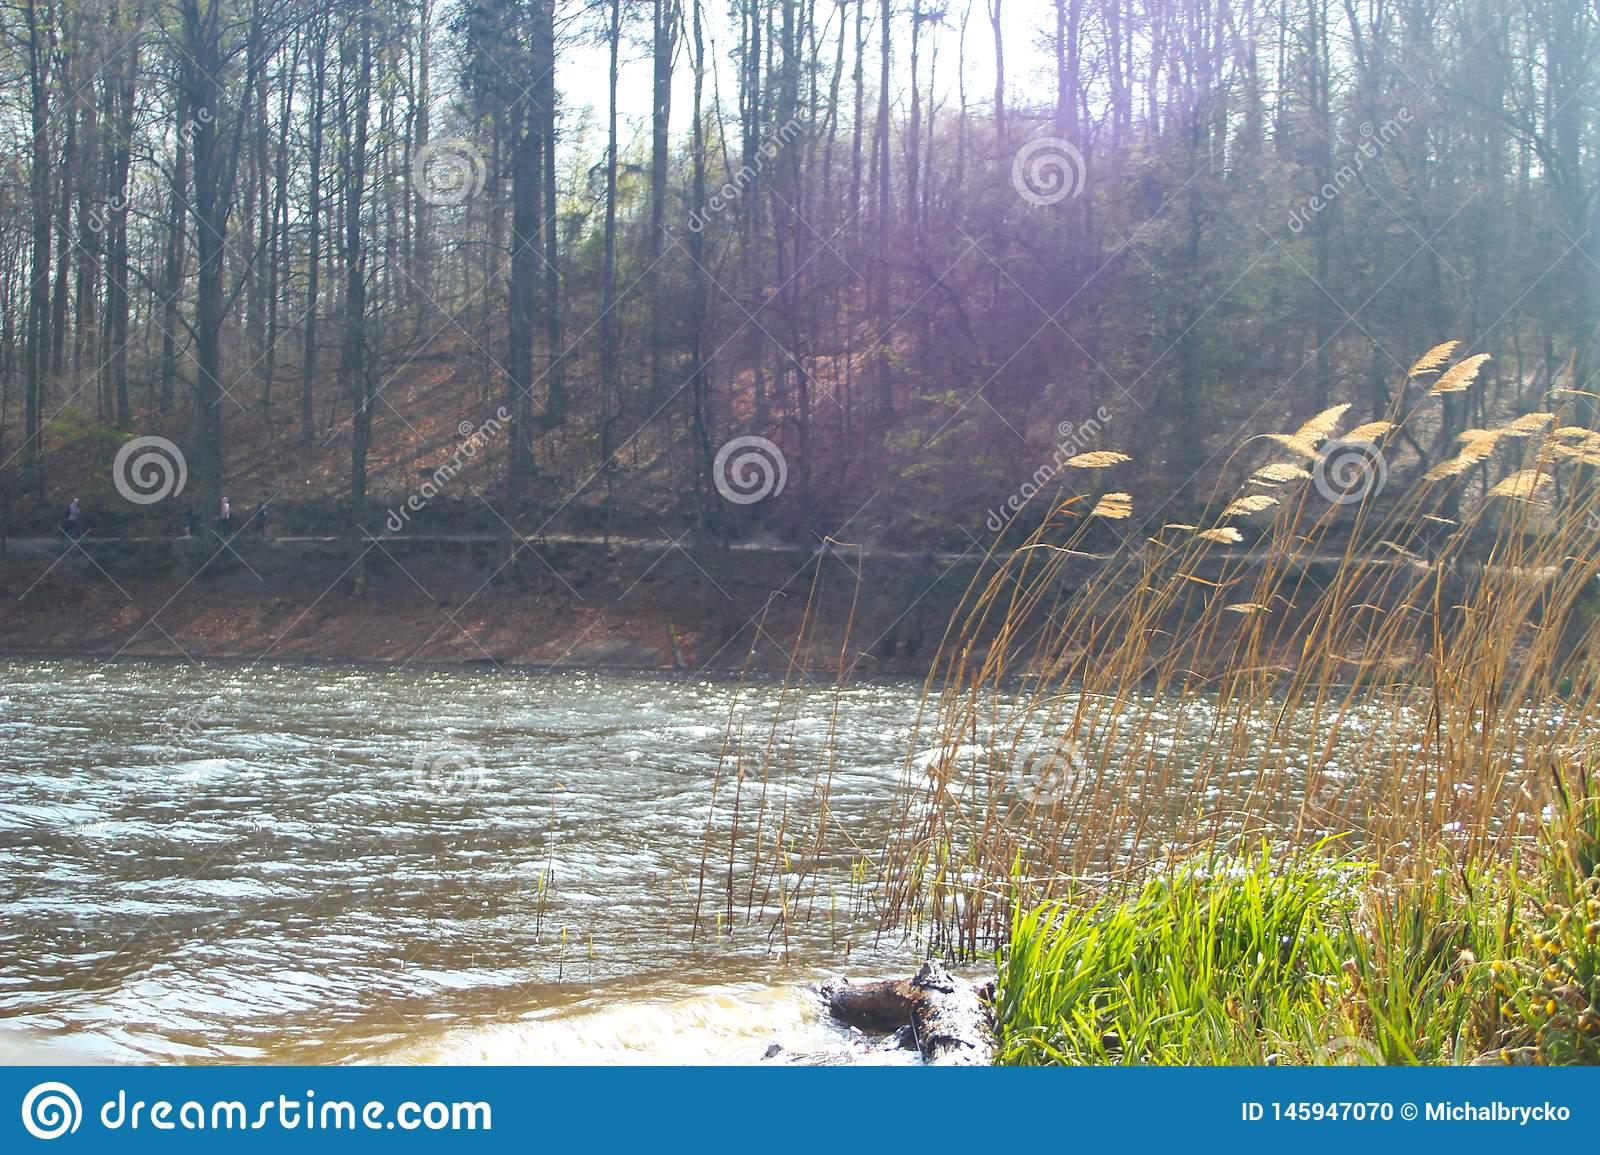 Lake in the forest with slowly rolling grass